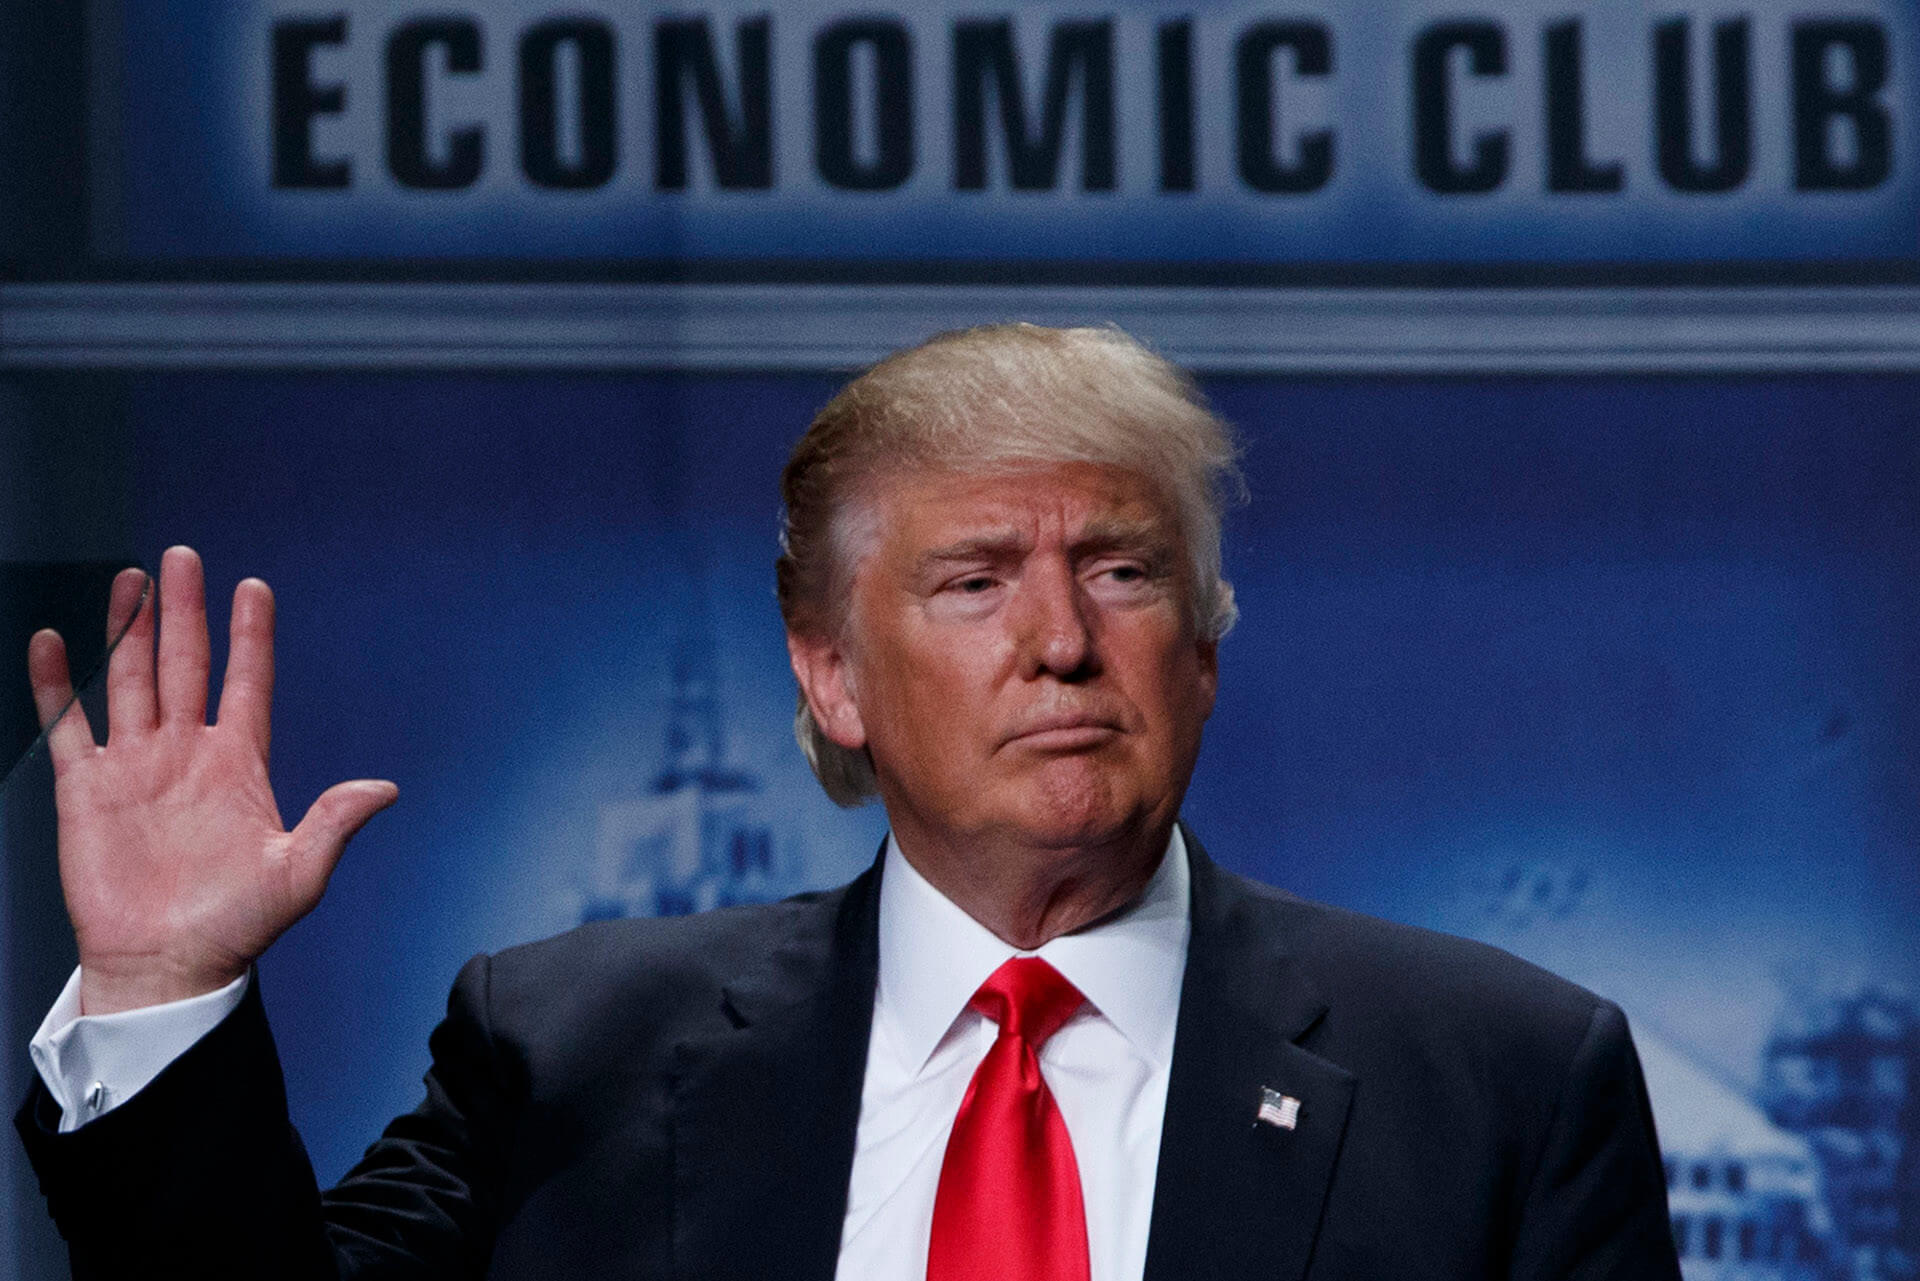 Trump's Economic Policy: Will It Sustain the US Economy?